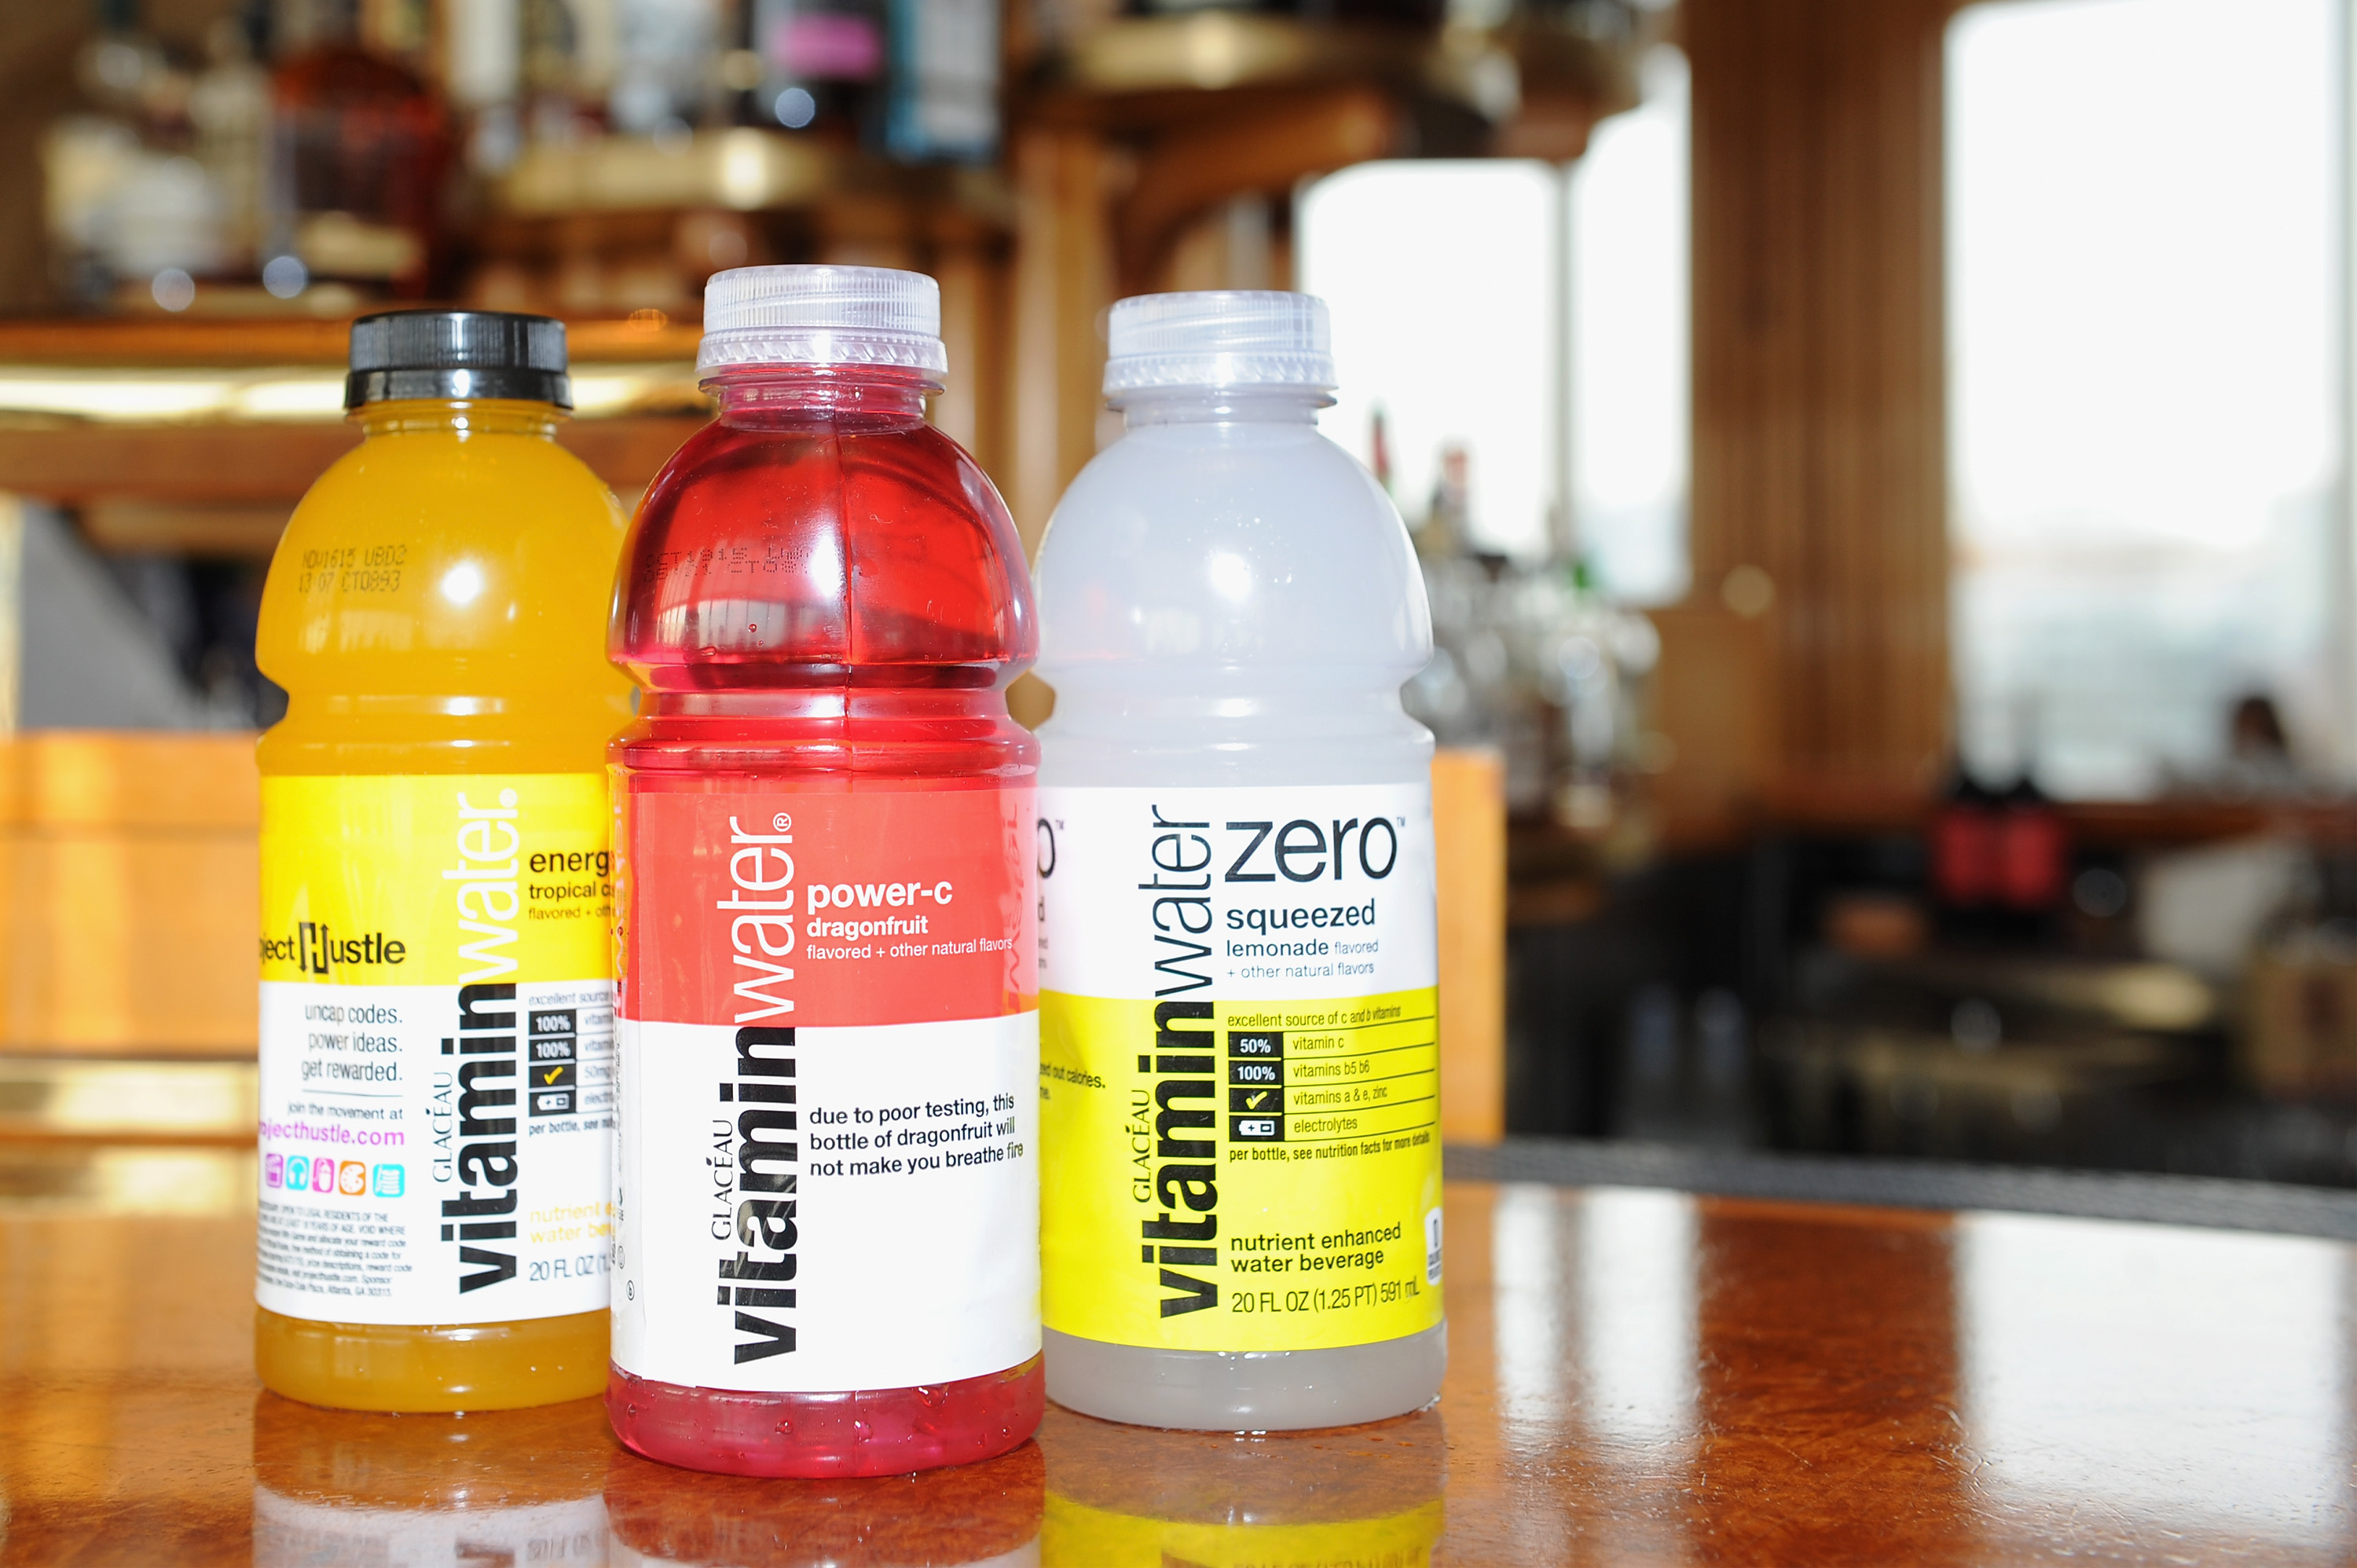 Vitaminwater at The Top of The Standard on May 29, 2015 in New York City.